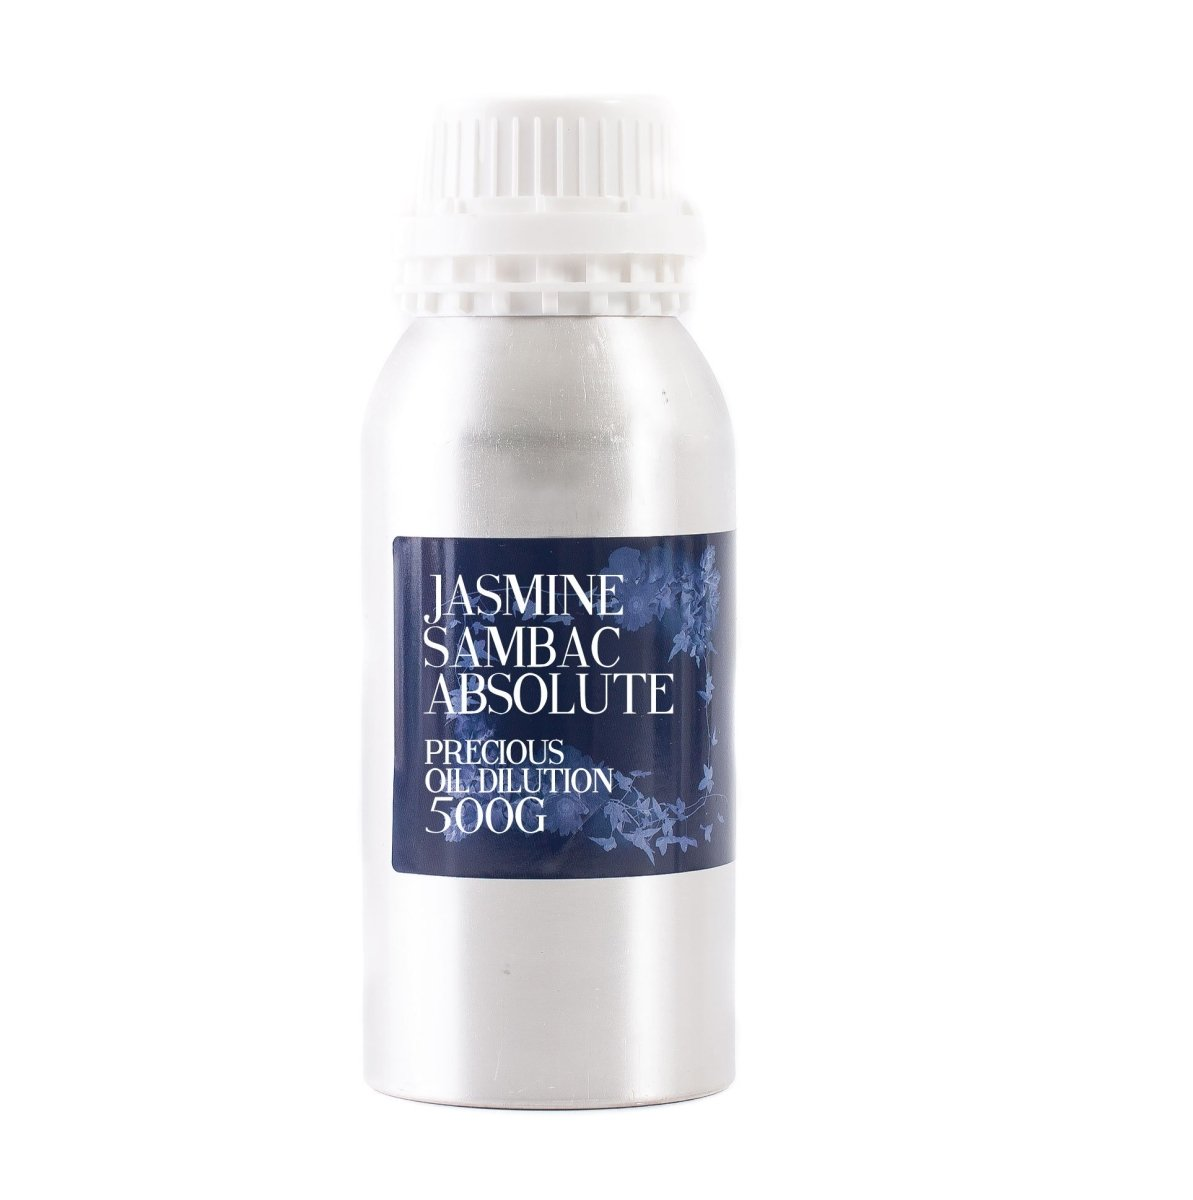 Jasmine Sambac Absolute Oil Dilution - Mystic Moments UK